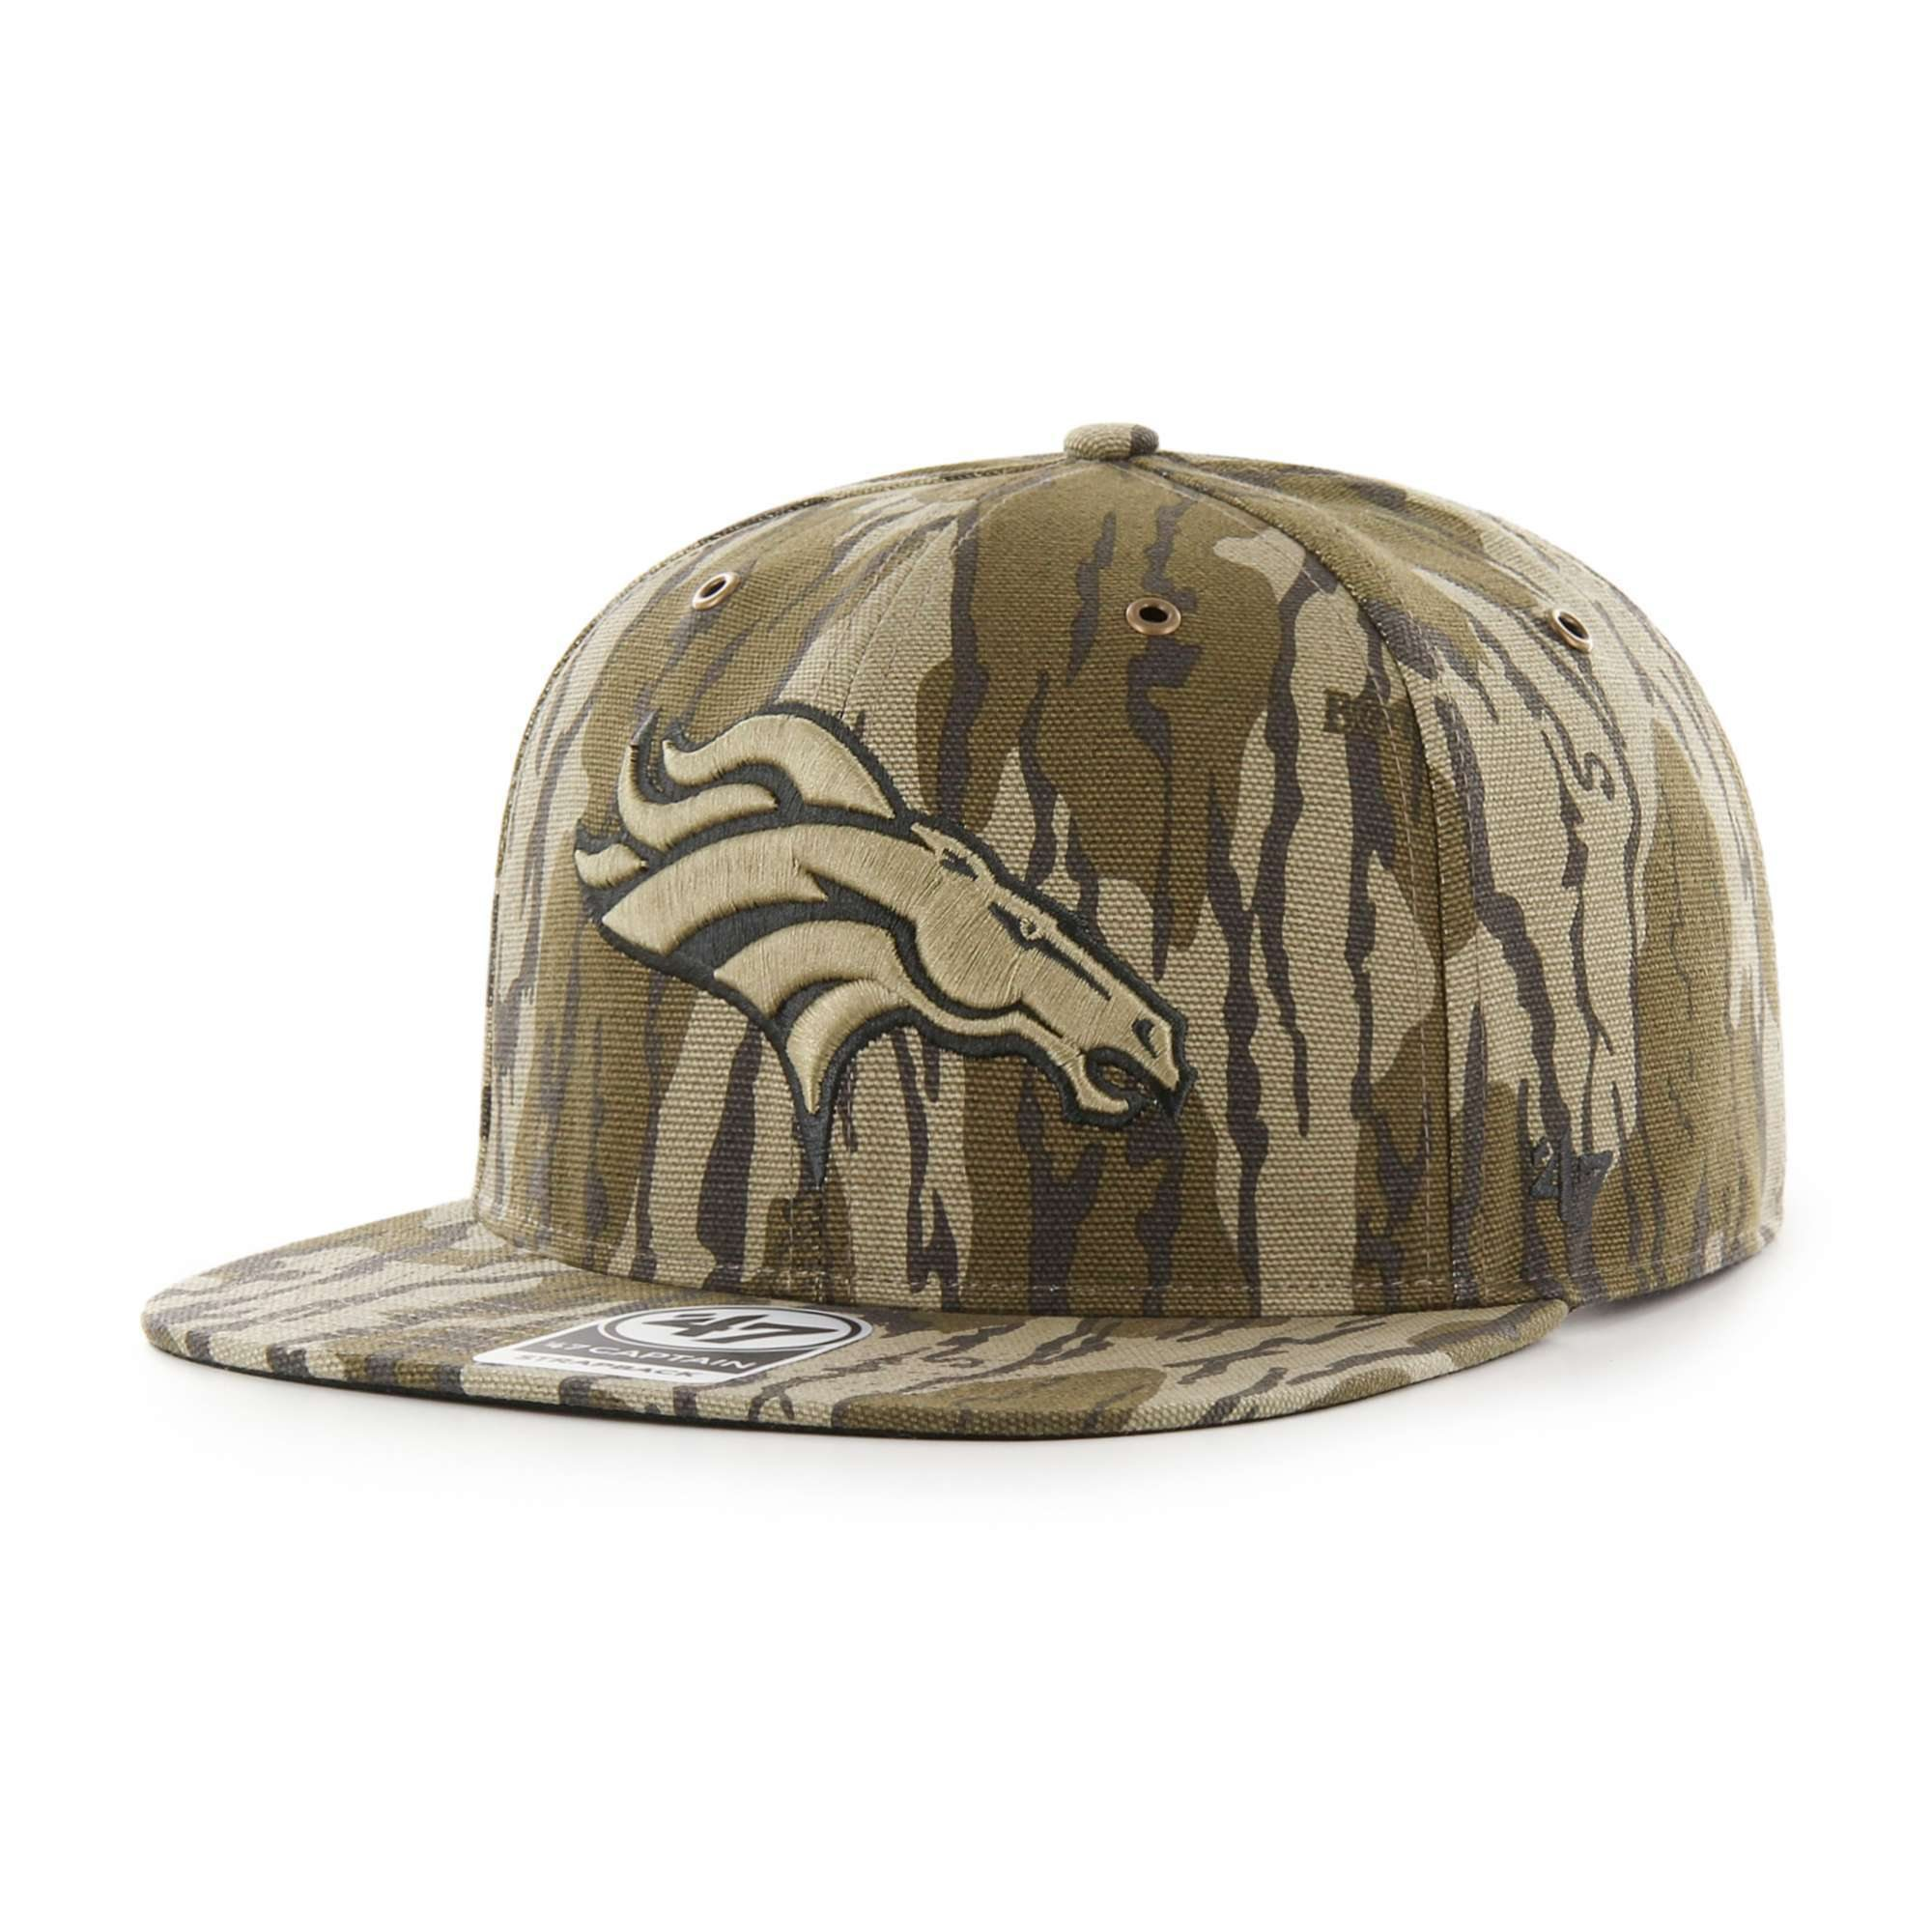 NFL team hats built for the fan of the outdoors - Carhartt.com Email ... c17becb7c